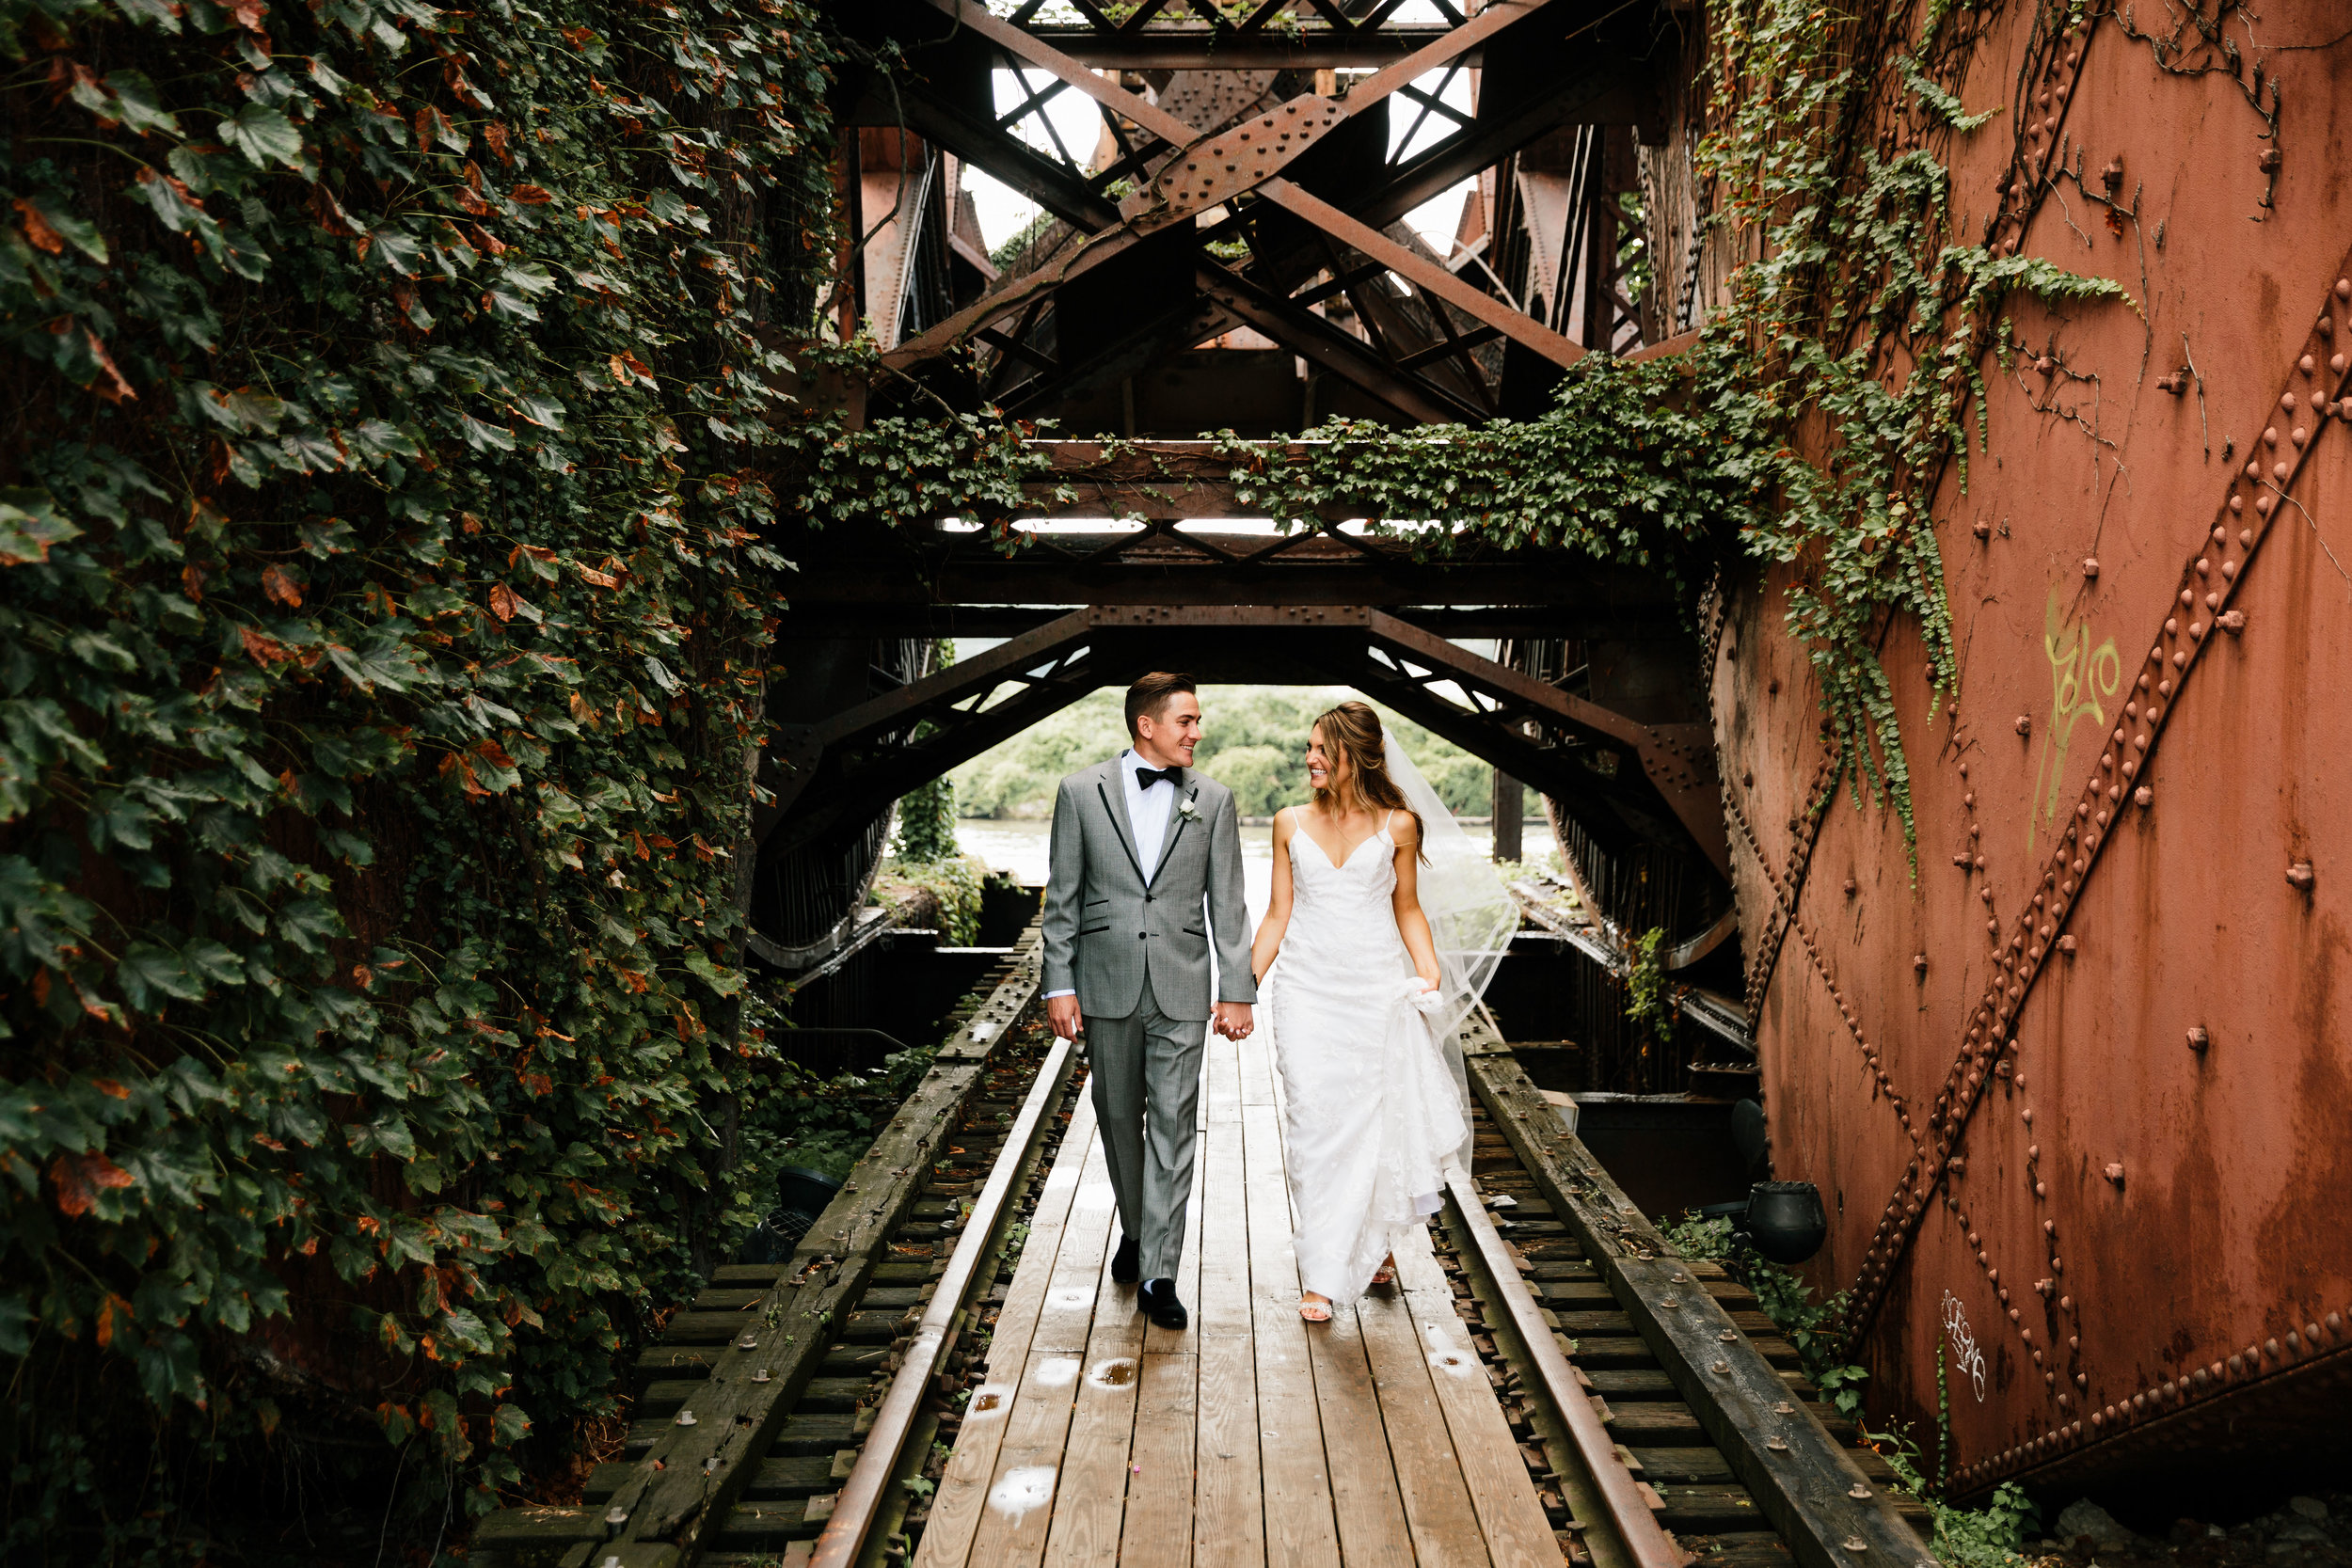 tenk-west-bank-flats-photography-wedding-photographers-in-cleveland-downtown-industrial-89.jpg